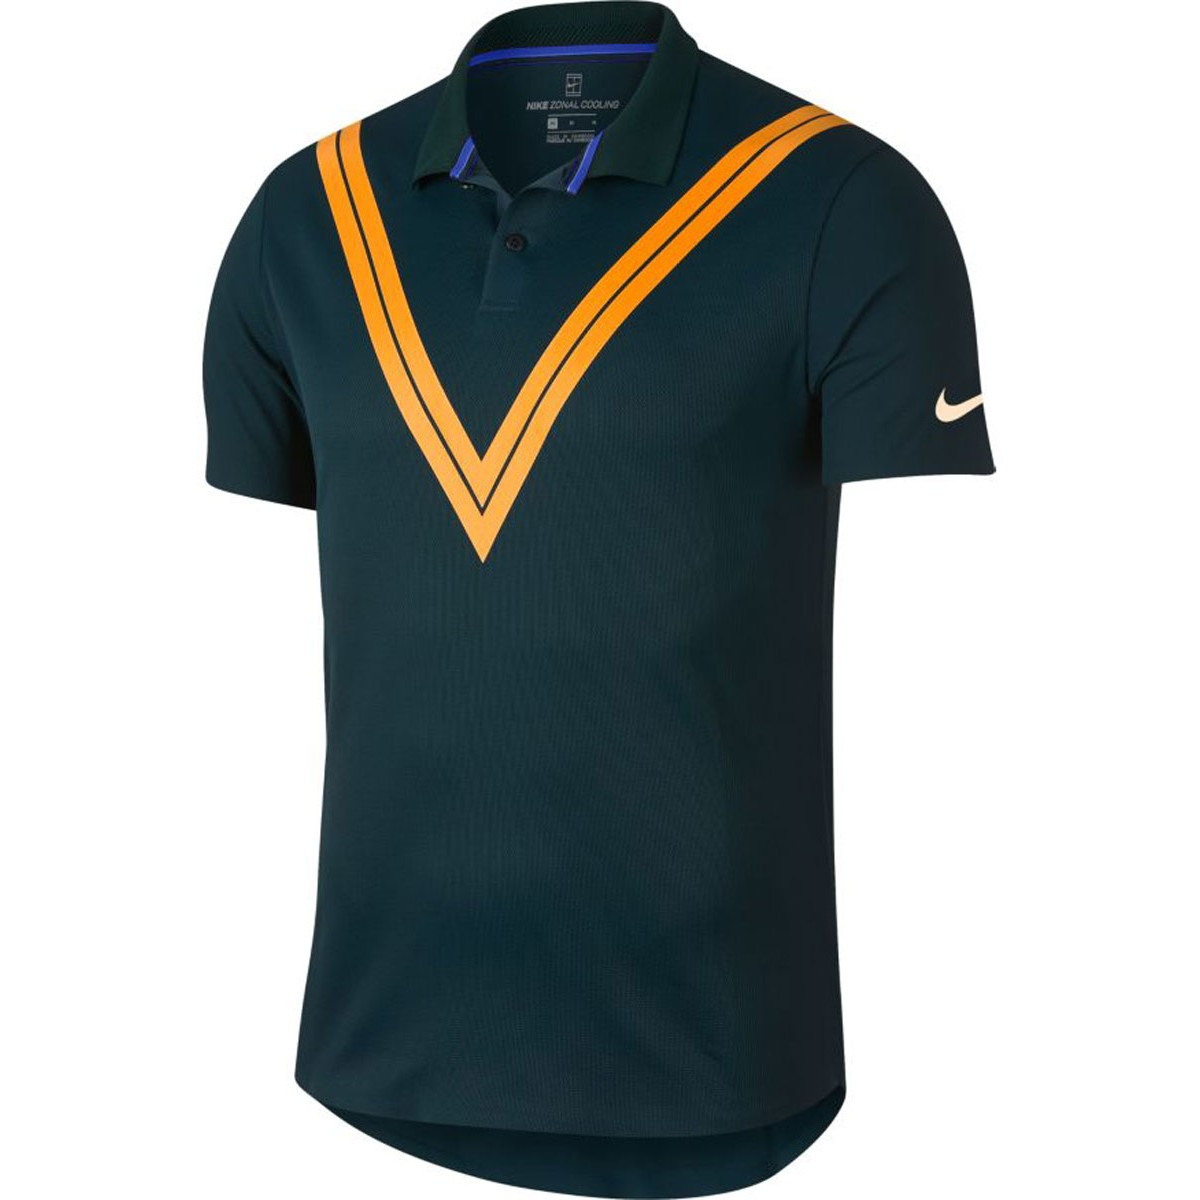 POLO NIKE COURT ADVANTAGE FEDERER US OPEN NUIT